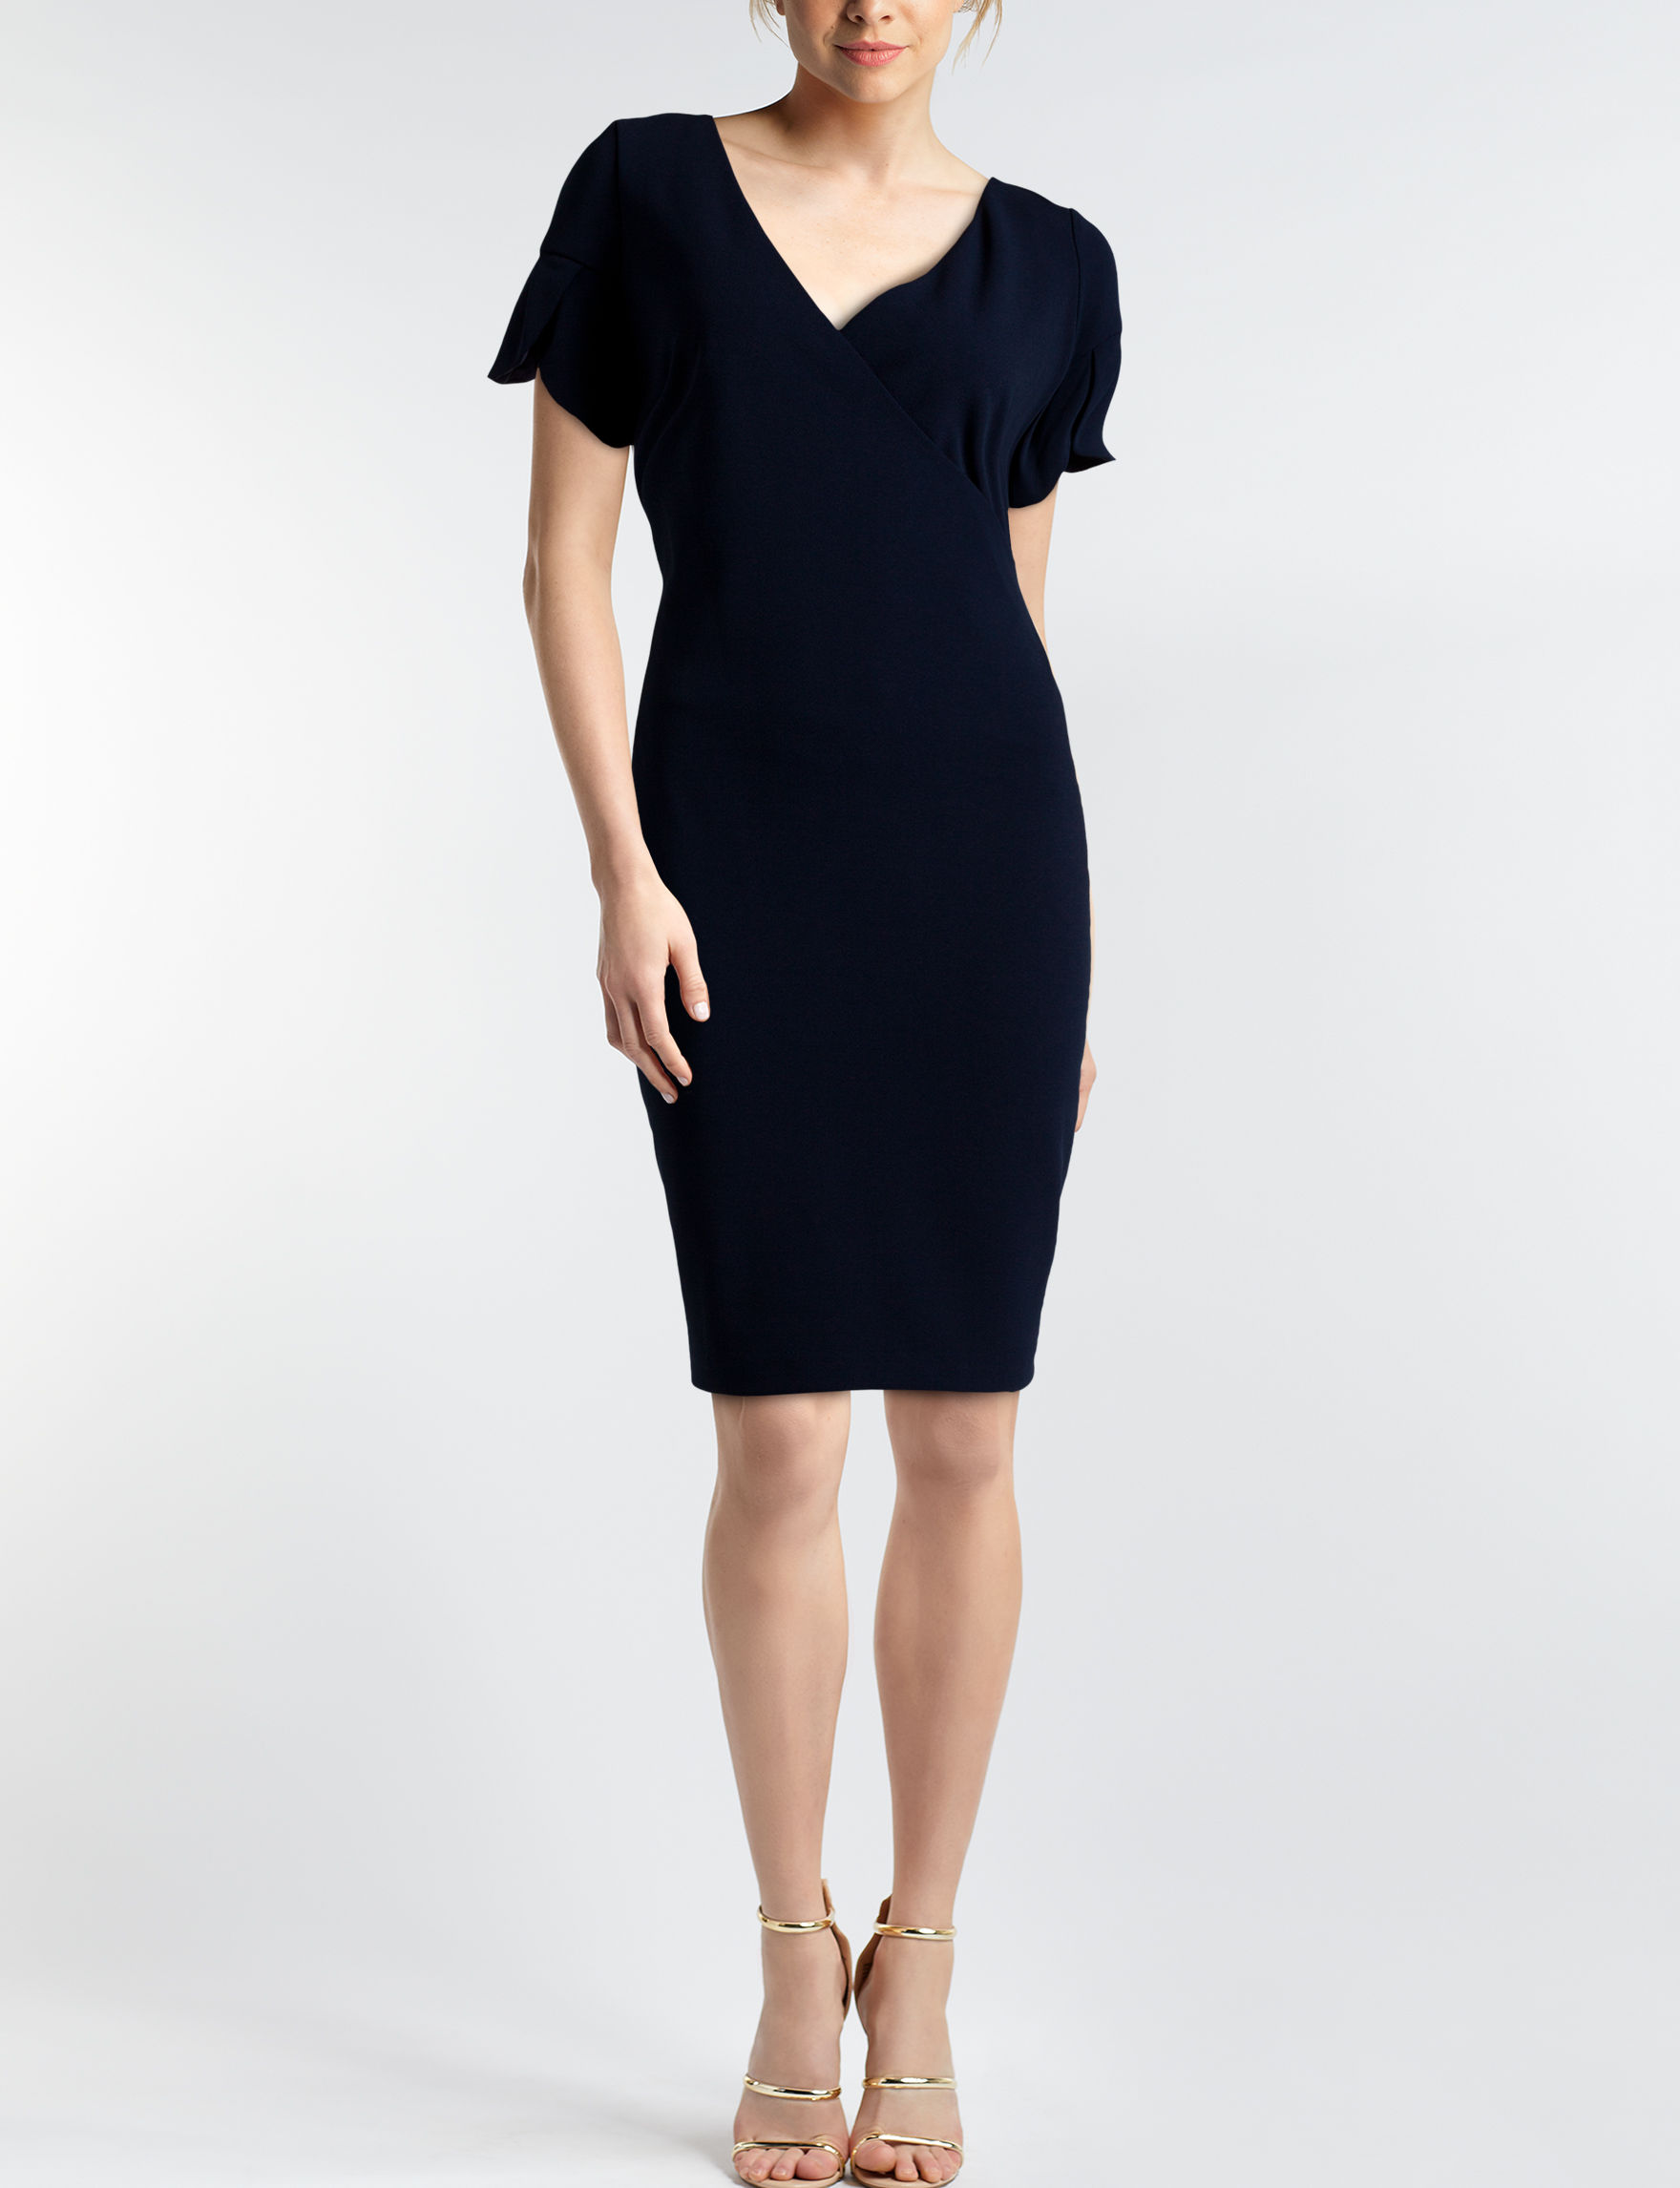 Glamour Navy Everyday & Casual Sheath Dresses